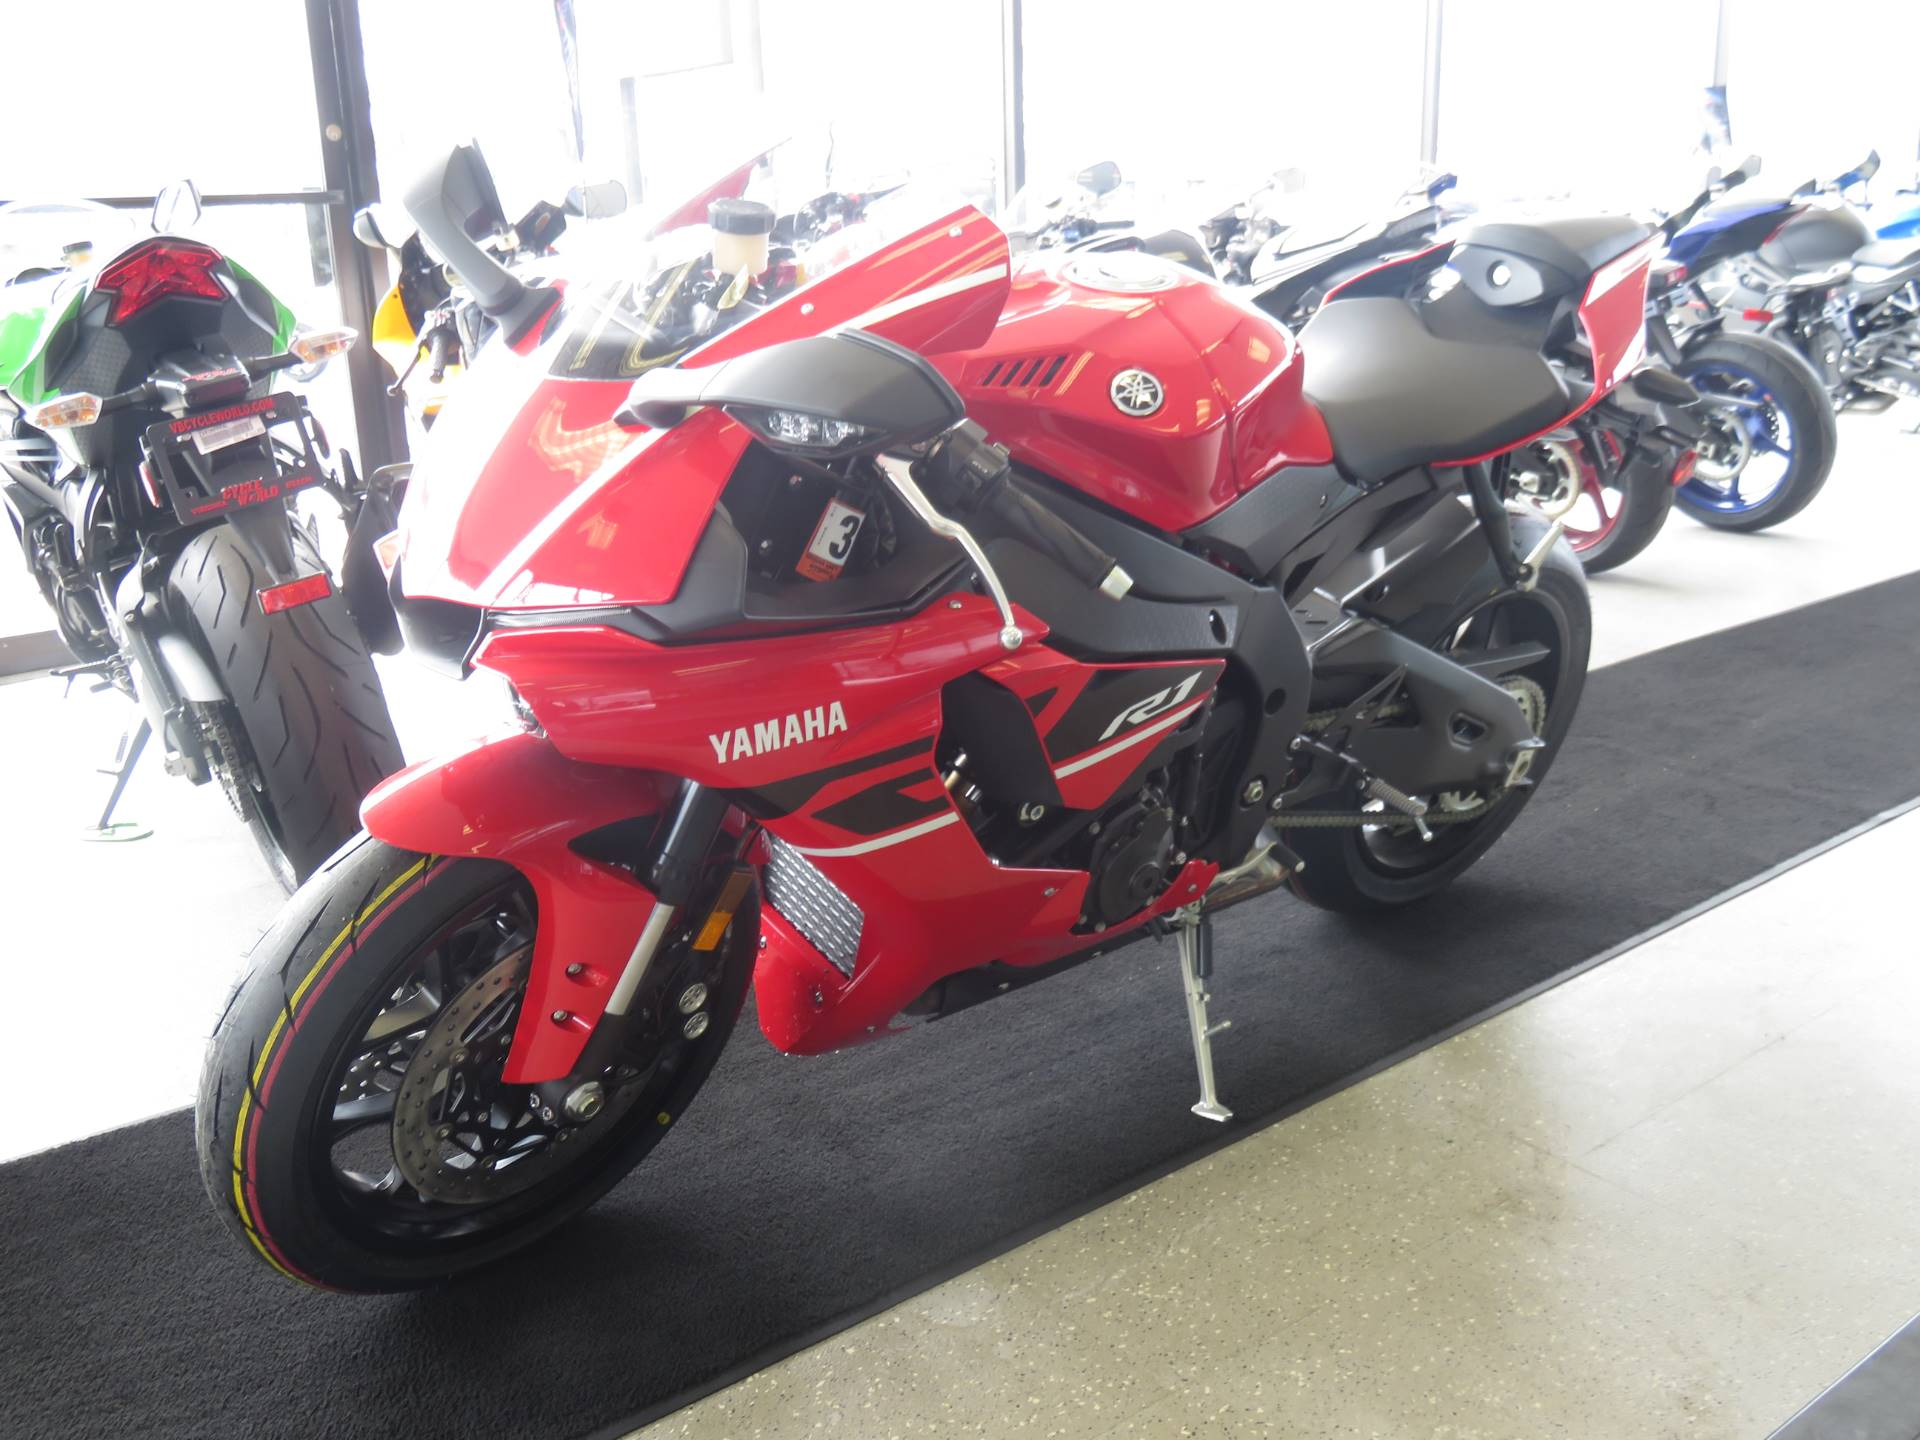 2019 Yamaha Yzf R1 Motorcycles Virginia Beach Virginia